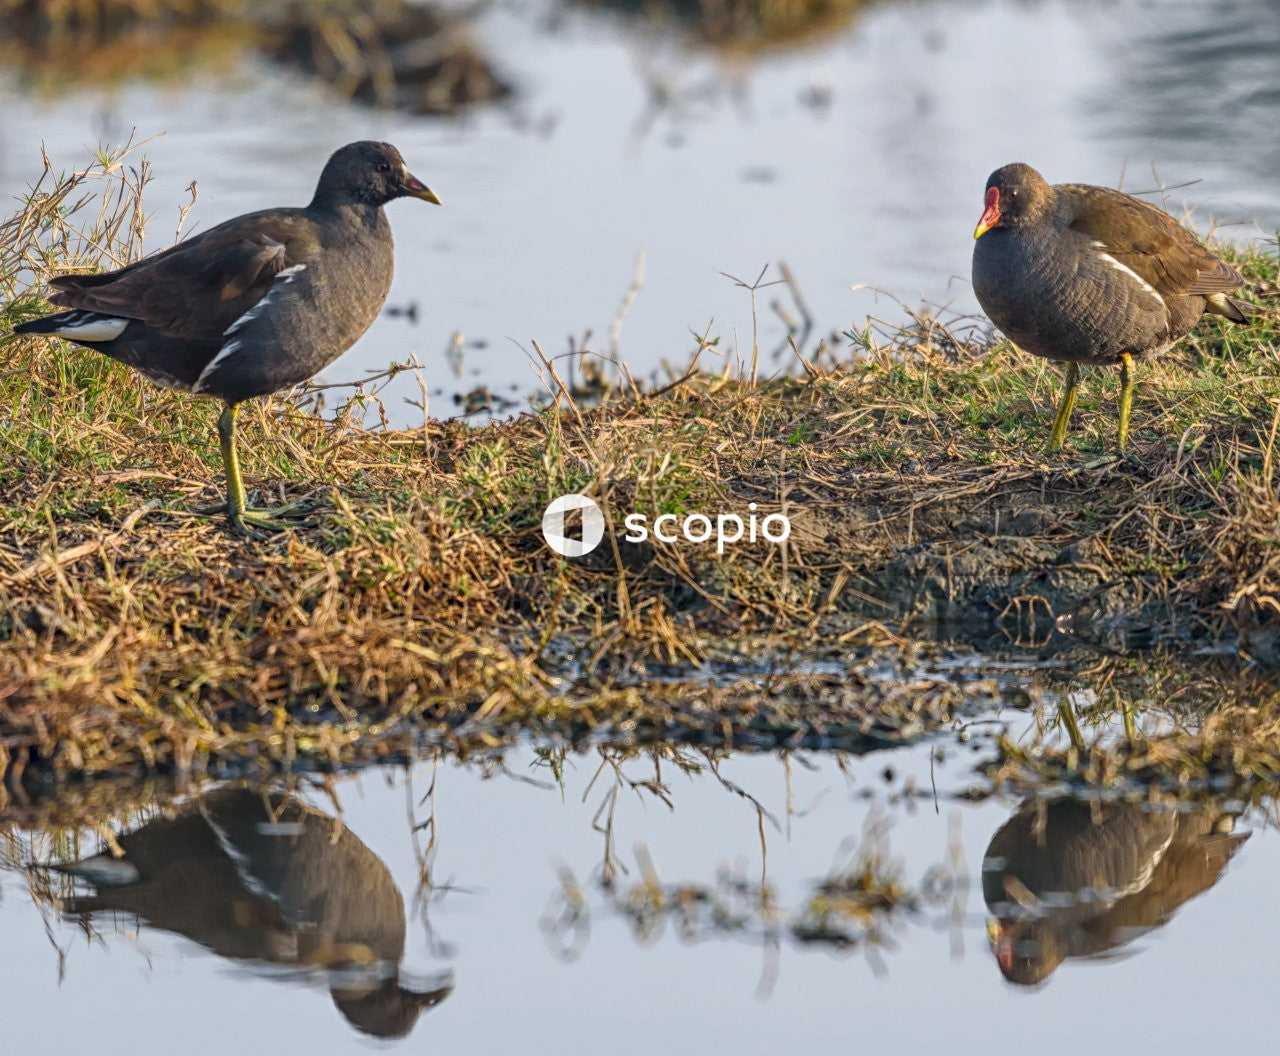 Black duck on brown grass